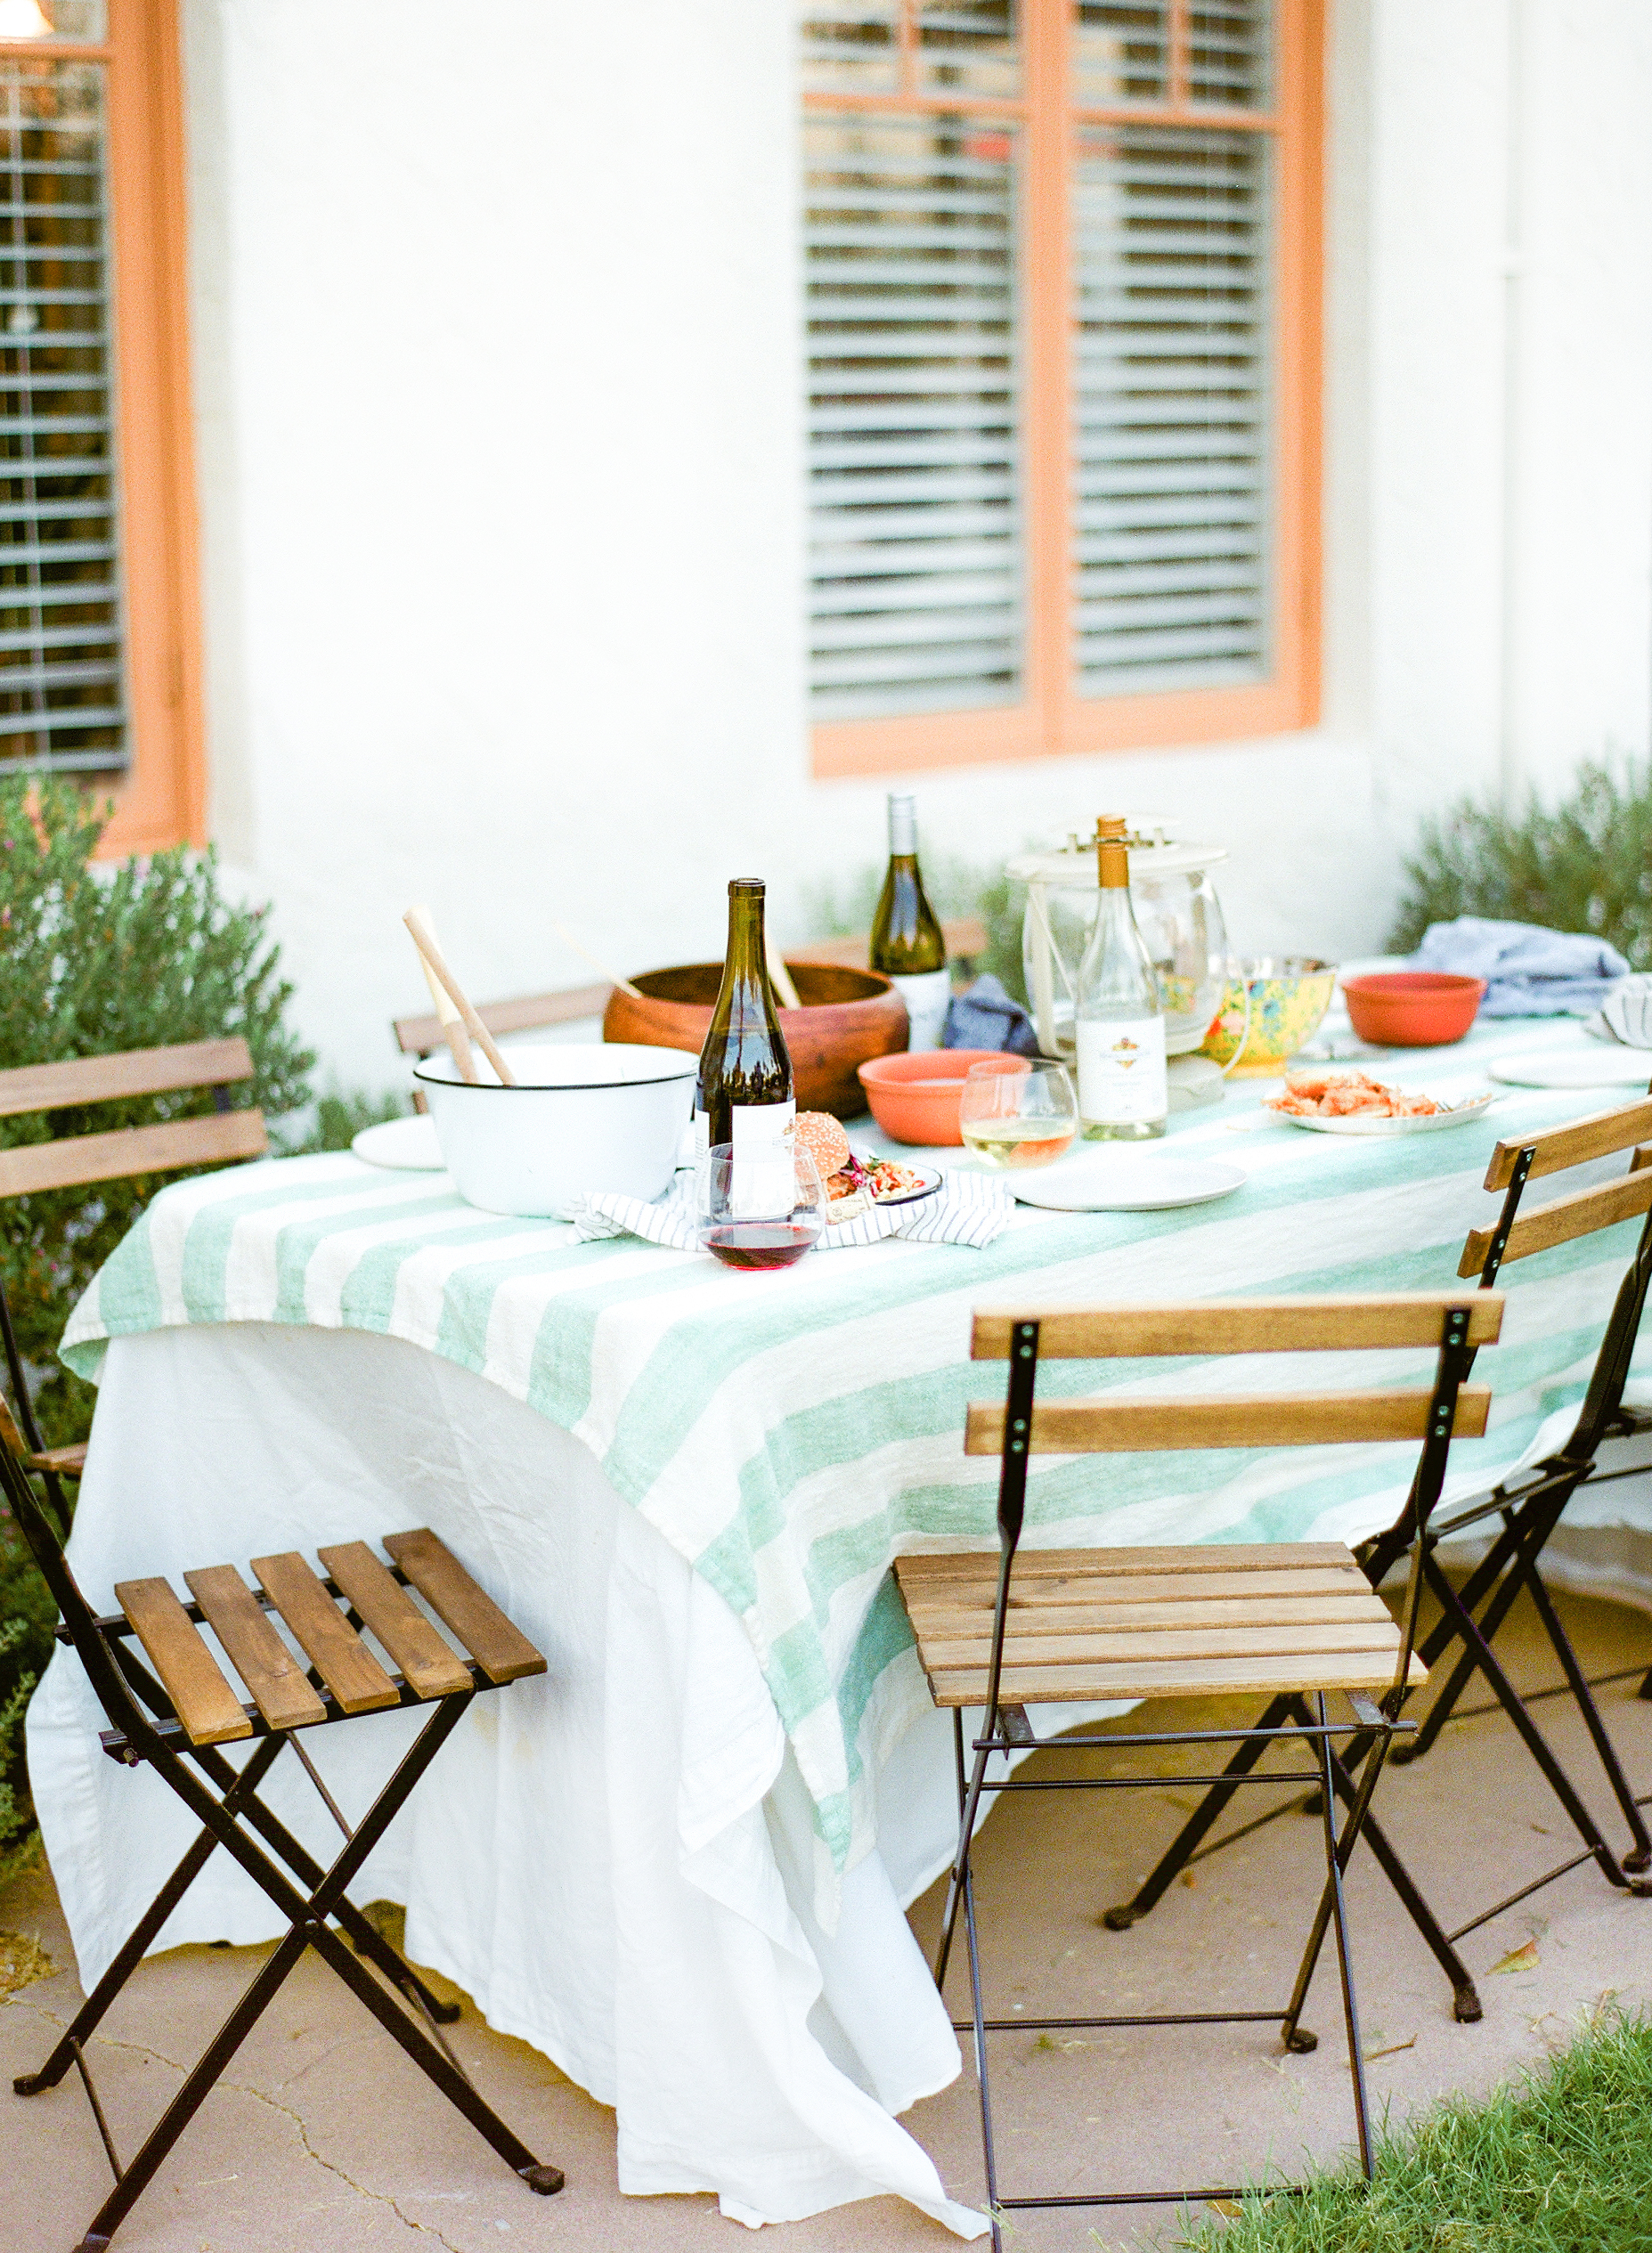 We are throwing a relaxed get-together with some close friends to celebrate the 4th. Not in the mood for super patriotic decorations or over the top red, white, and blue decor? Then saddle up to our summer-centric, backyard bash! This year, we are opting out of the hectic parade and crowd mayhem to focus on the things we hold dear - food, friends, and, of course, #KJAVANT wine!